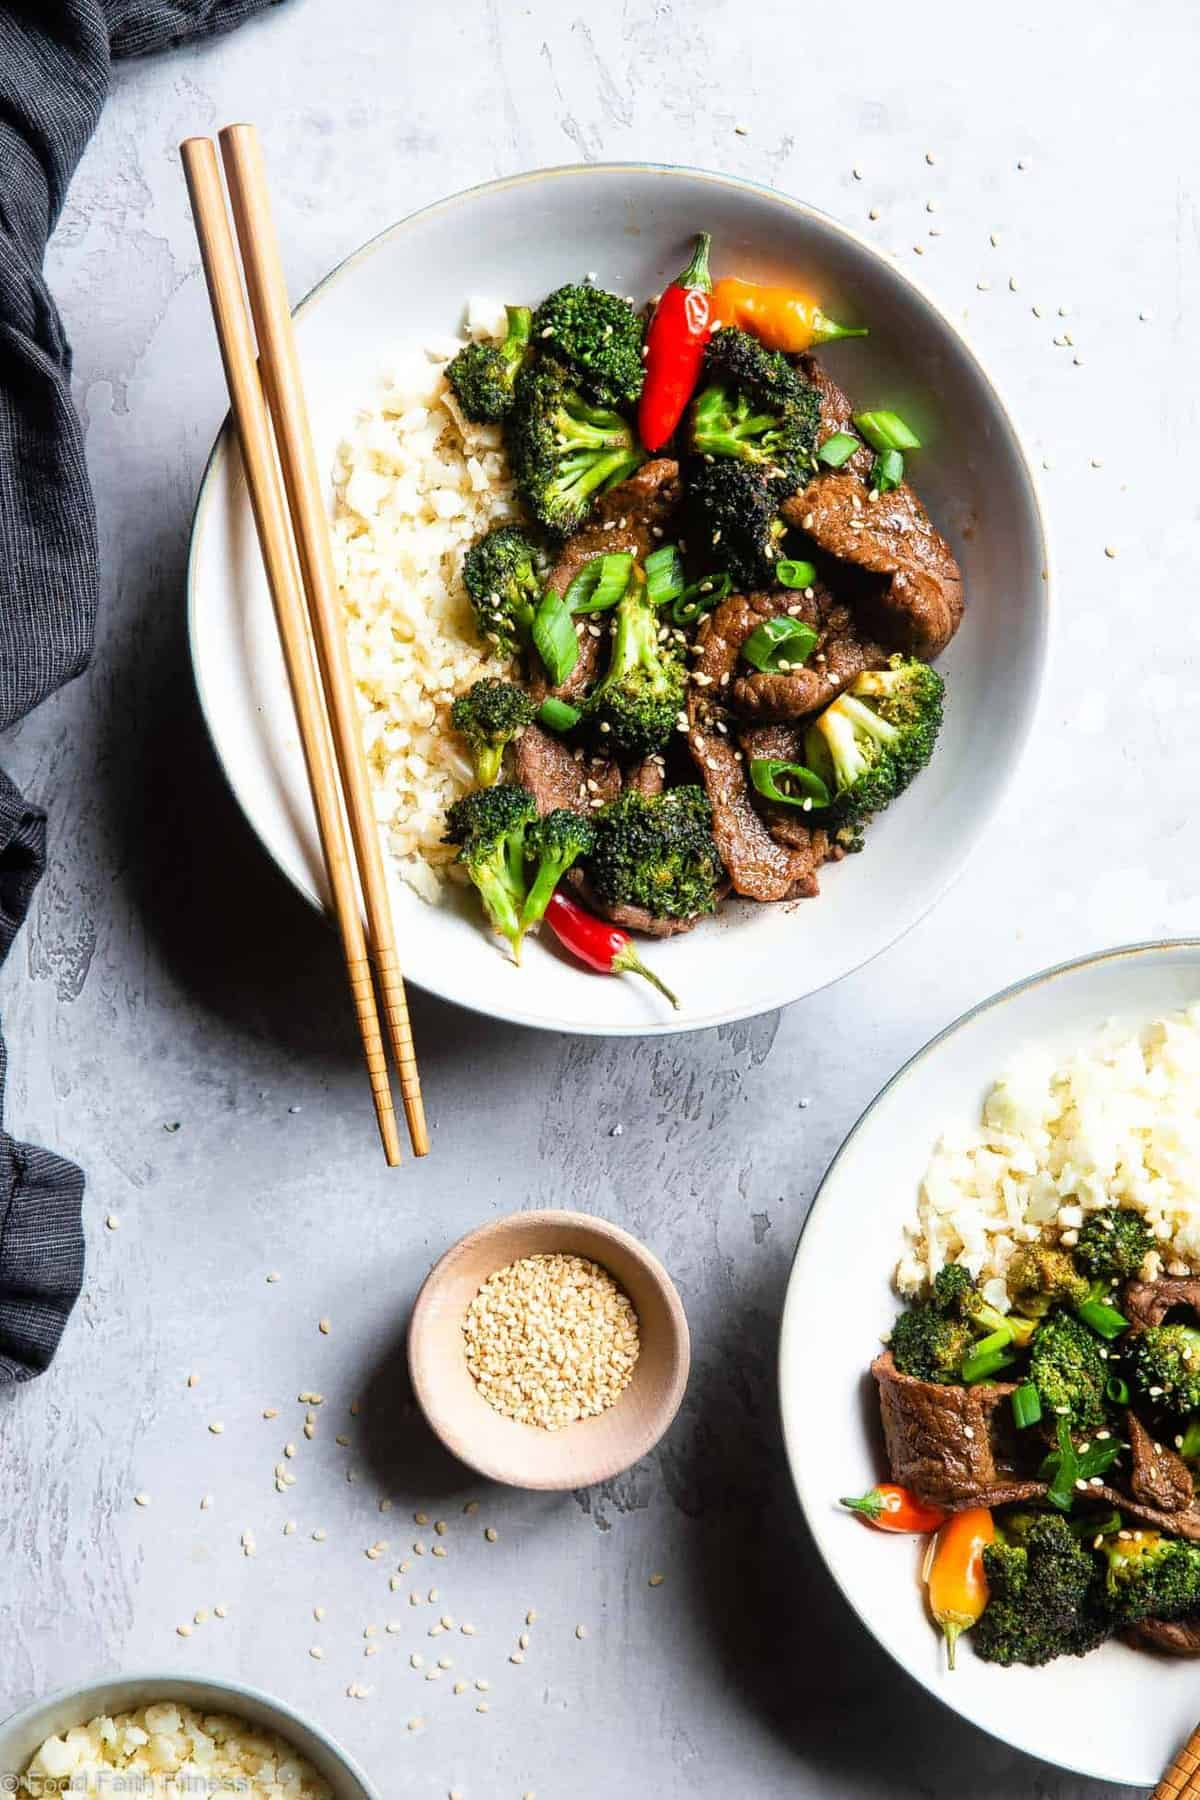 Easy Whole30 Low Carb Beef and Broccoli - This keto beef and broccoli is an EASY, one-pot weeknight meal that even picky eaters will love! So much yummier and healthier than takeout too! | #Foodfaithfitness |